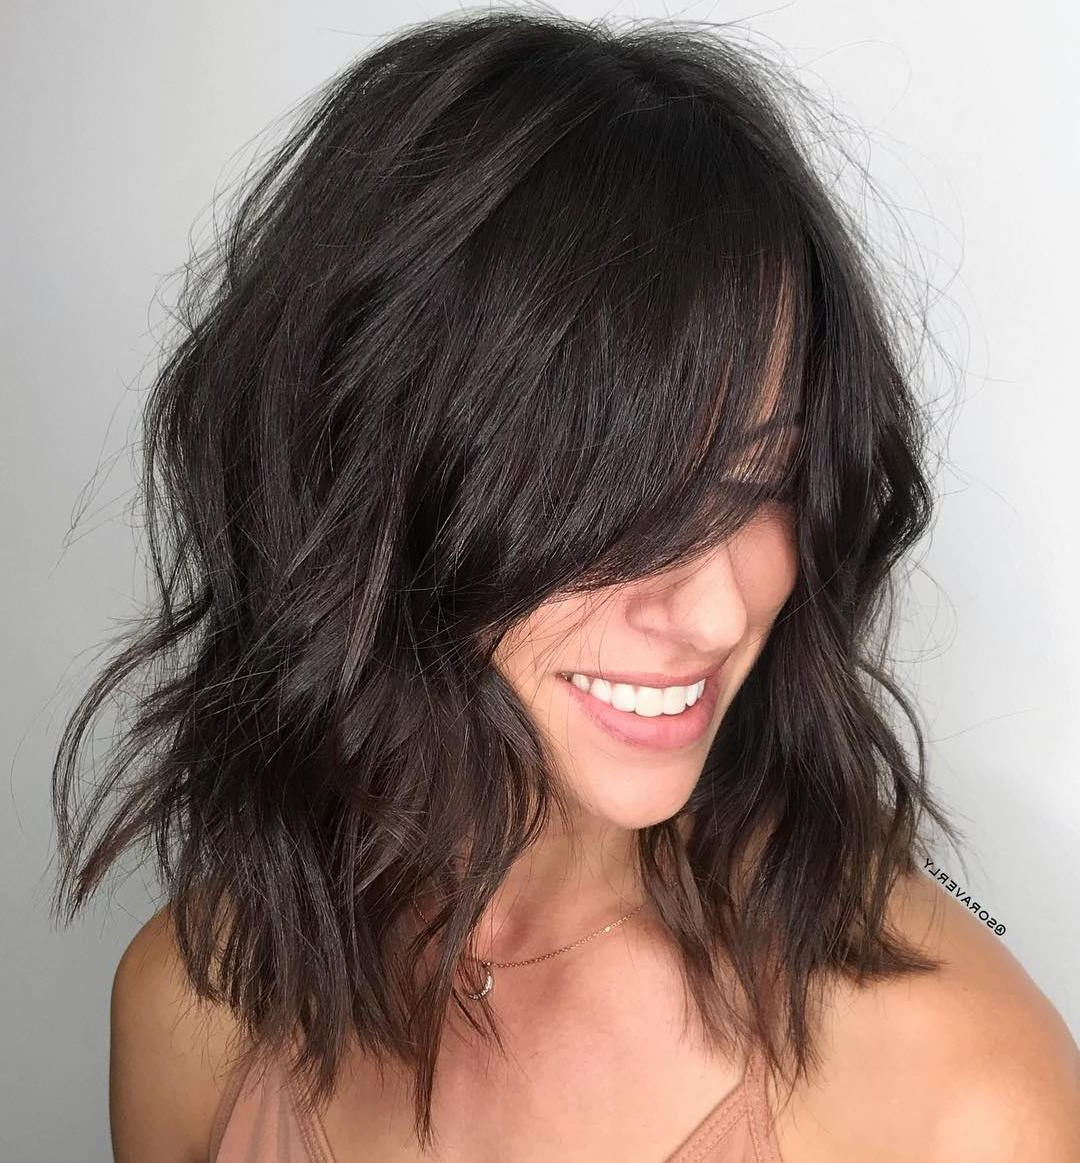 Most Current Feathered Black Shag Haircuts With Side Bangs Pertaining To How To Nail Layered Hair In 2019: Full Guide To Lengths And (View 11 of 20)